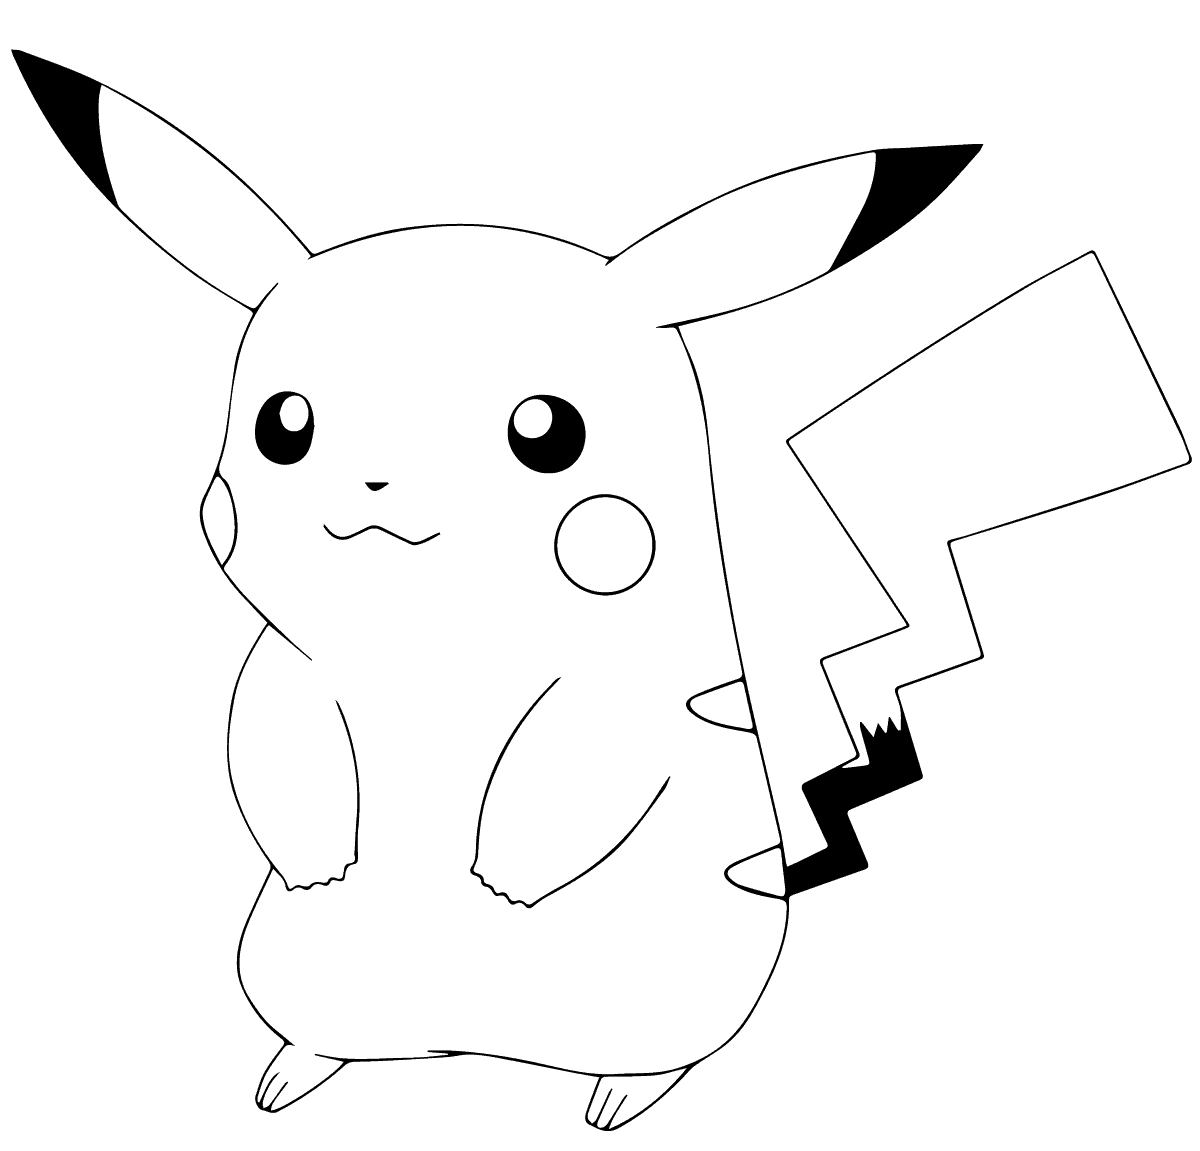 pikachu images for coloring pokemon thunderbolt attack 10 pikachu coloring pages for coloring images pikachu